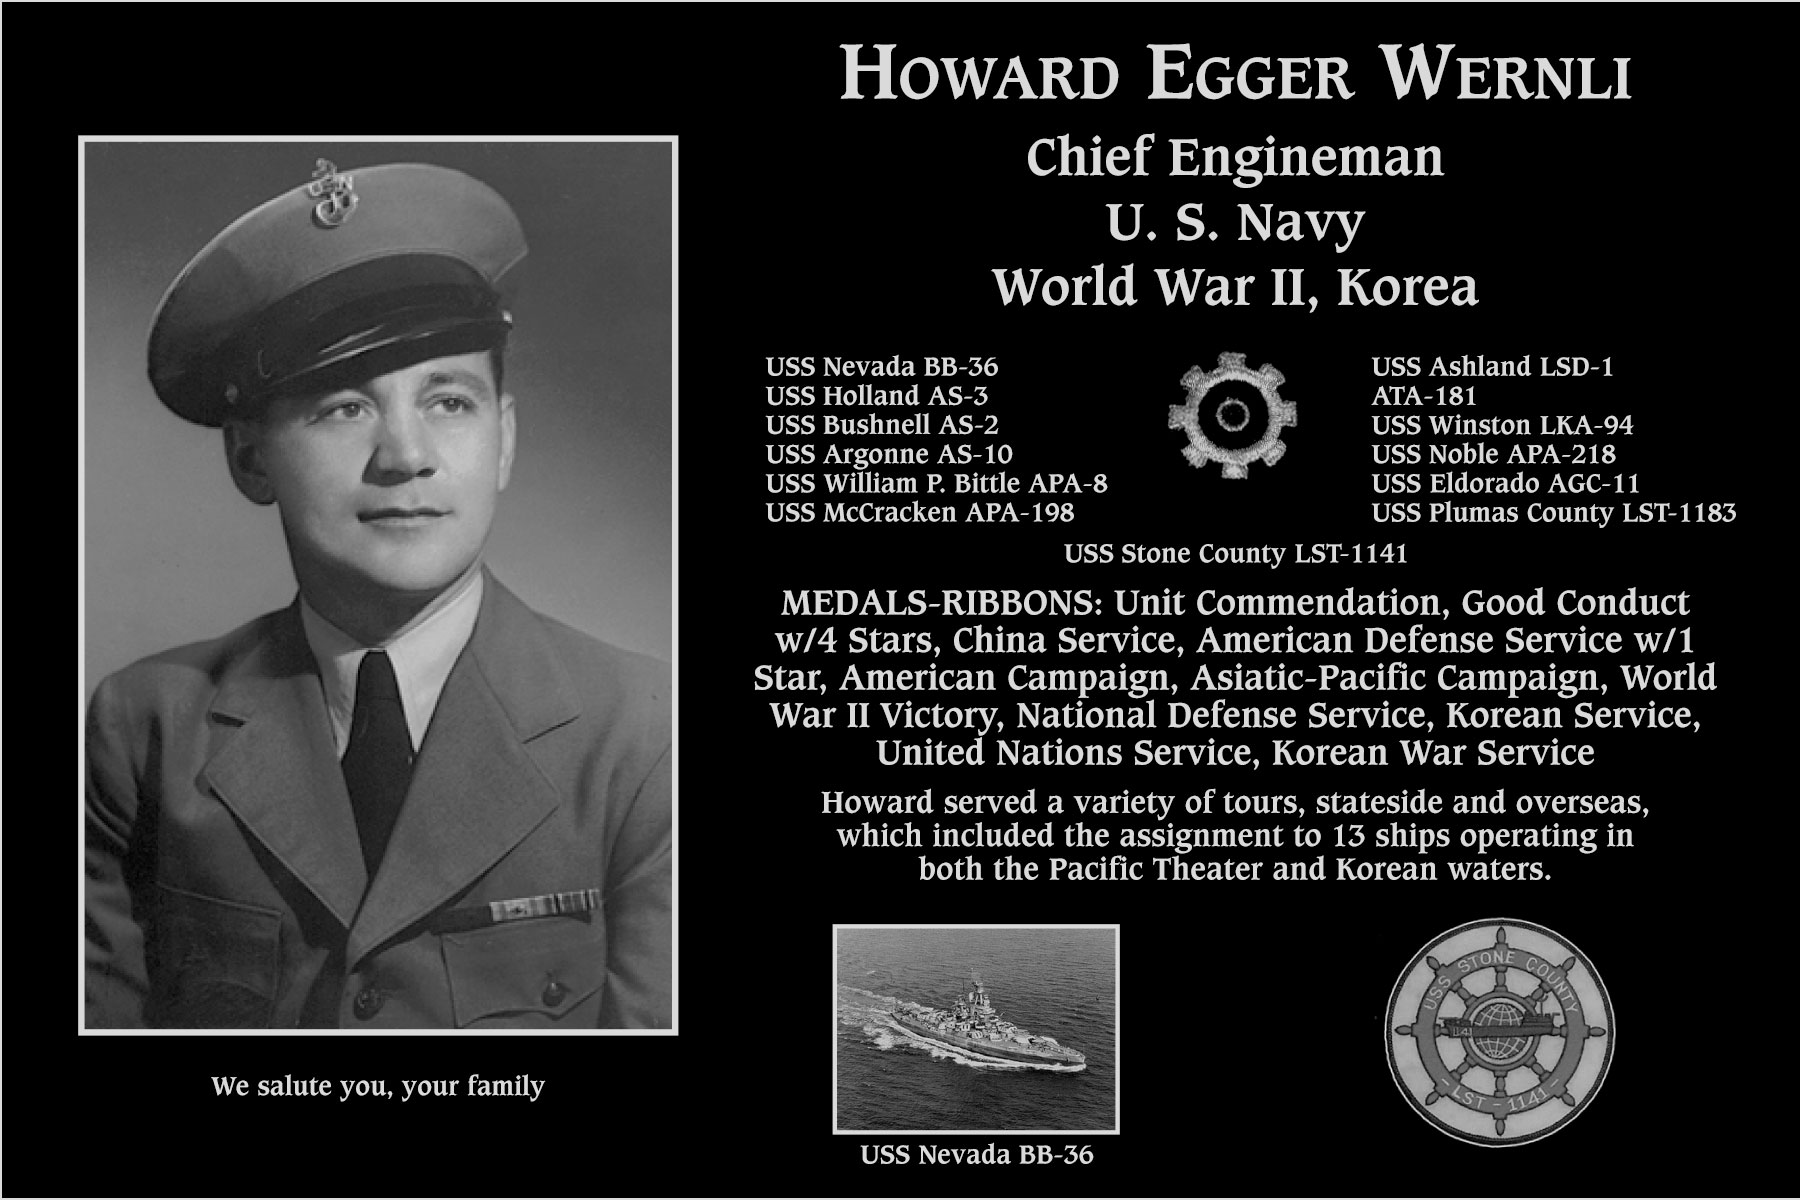 Howard Egger Wernli